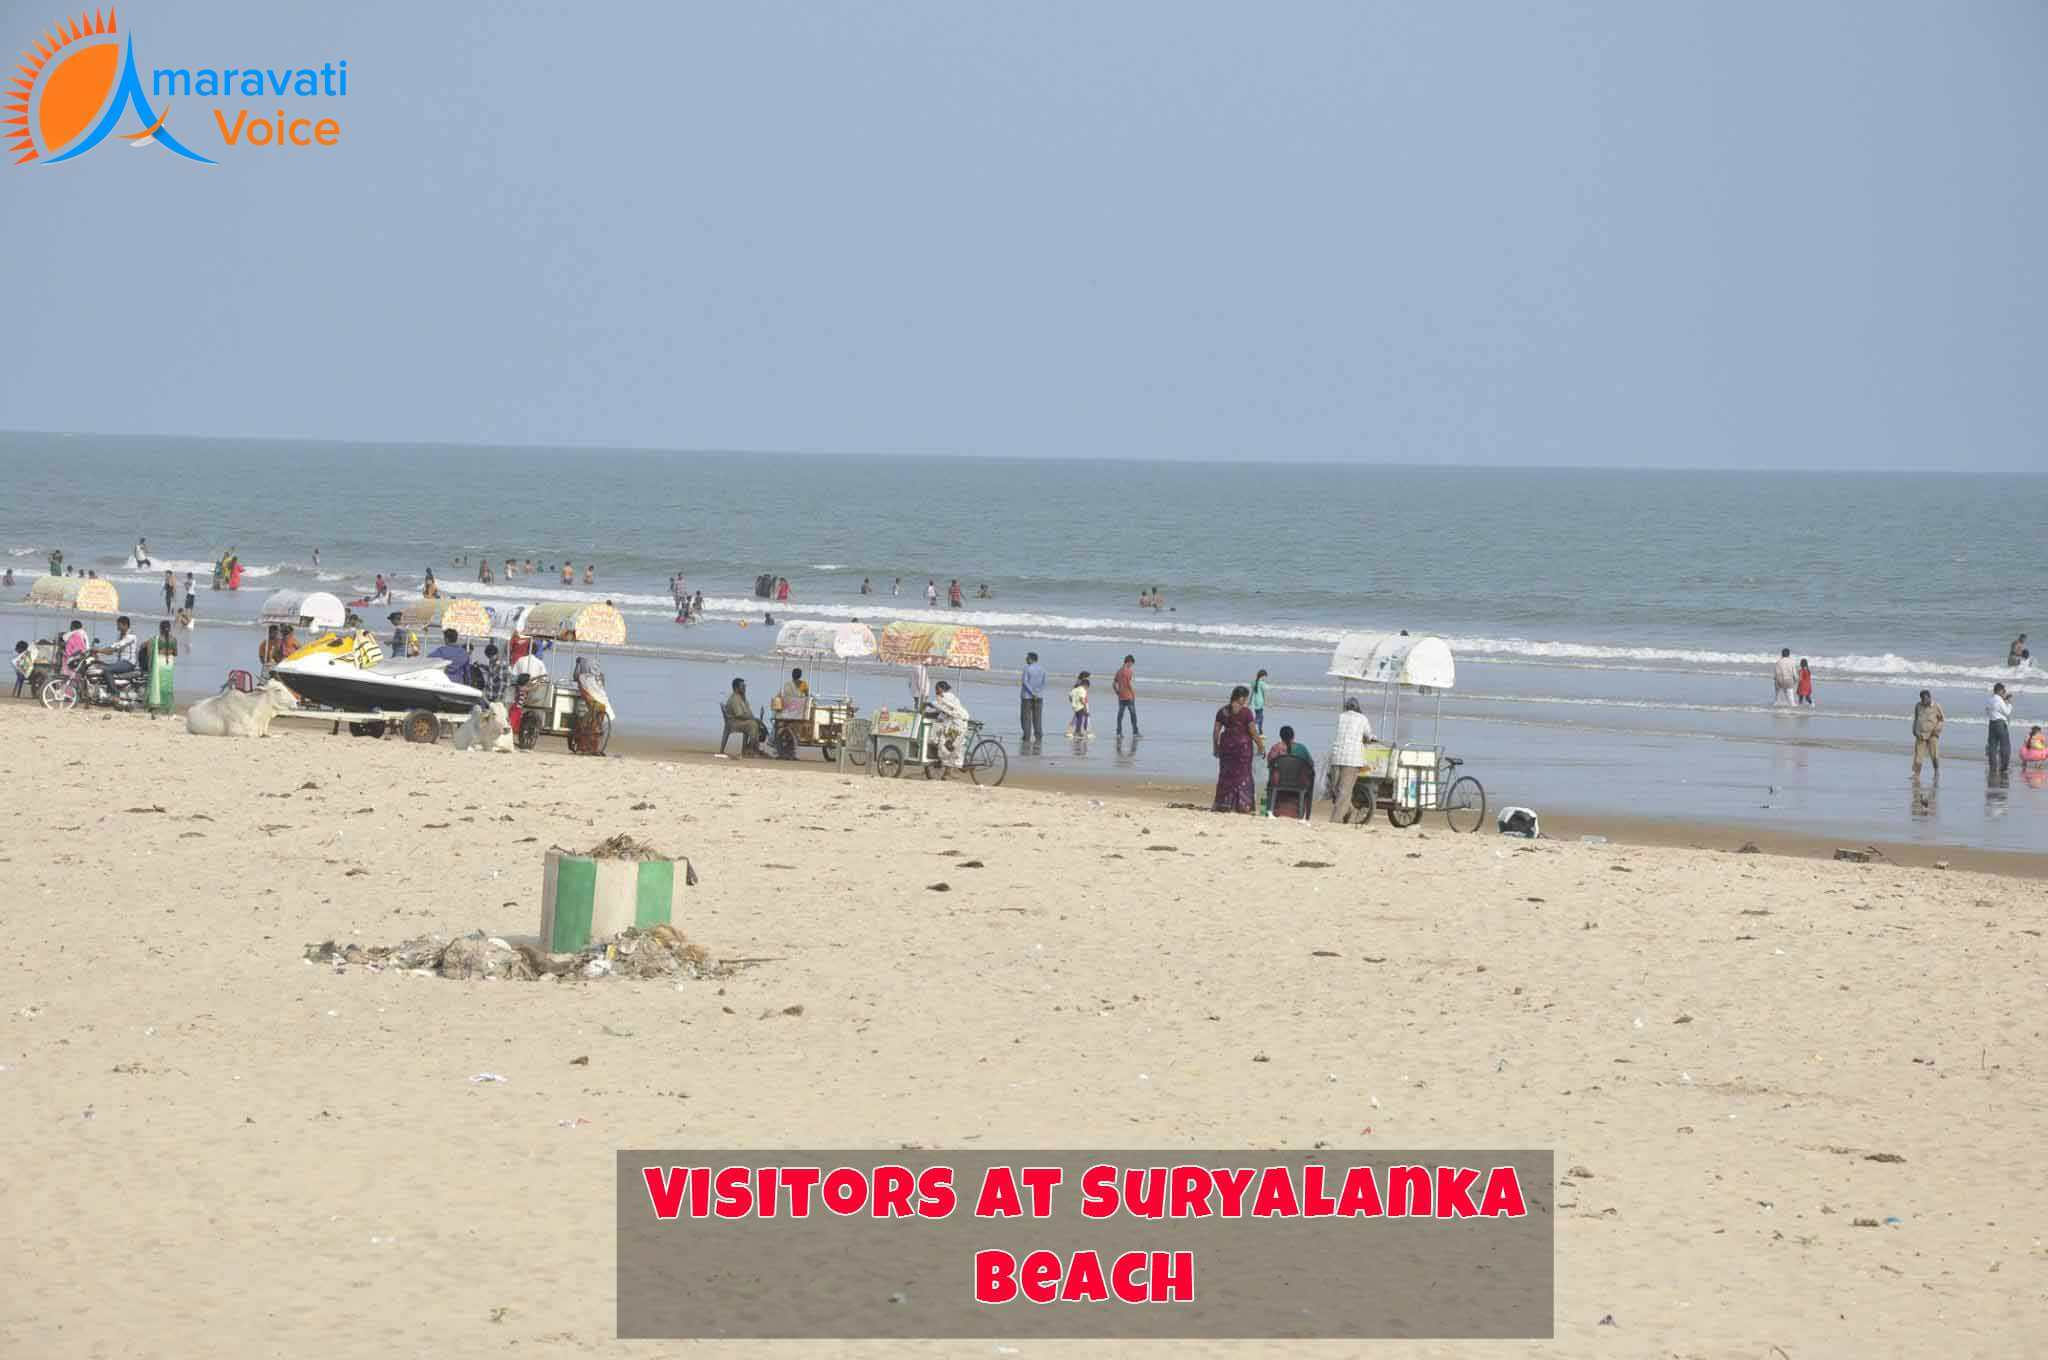 Visitors Enjoying at Suryalanka Beach